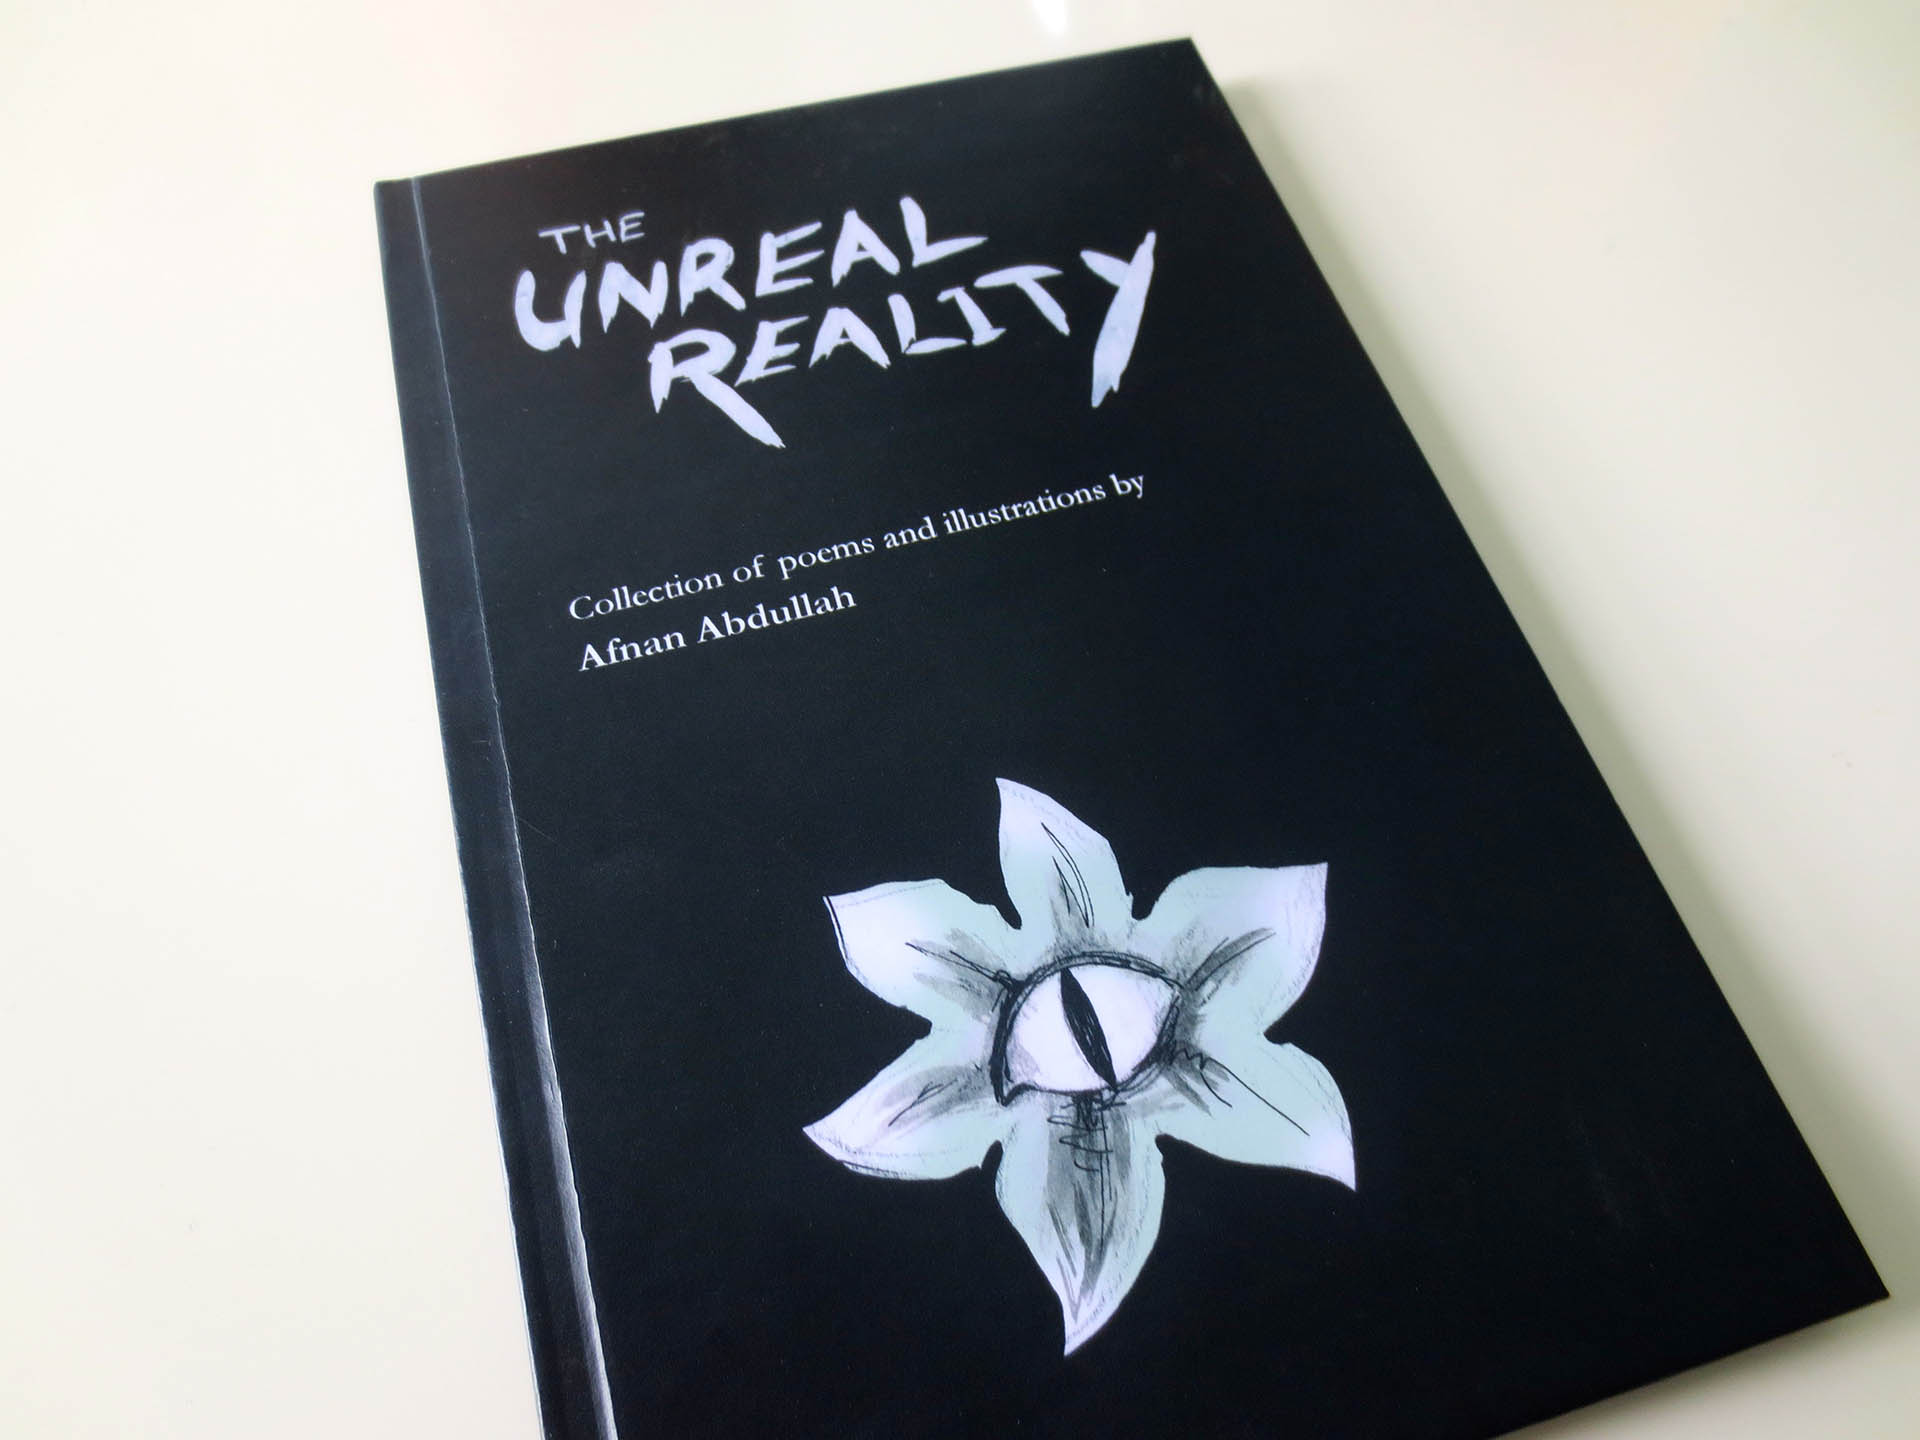 Book cover for The Unreal Reality